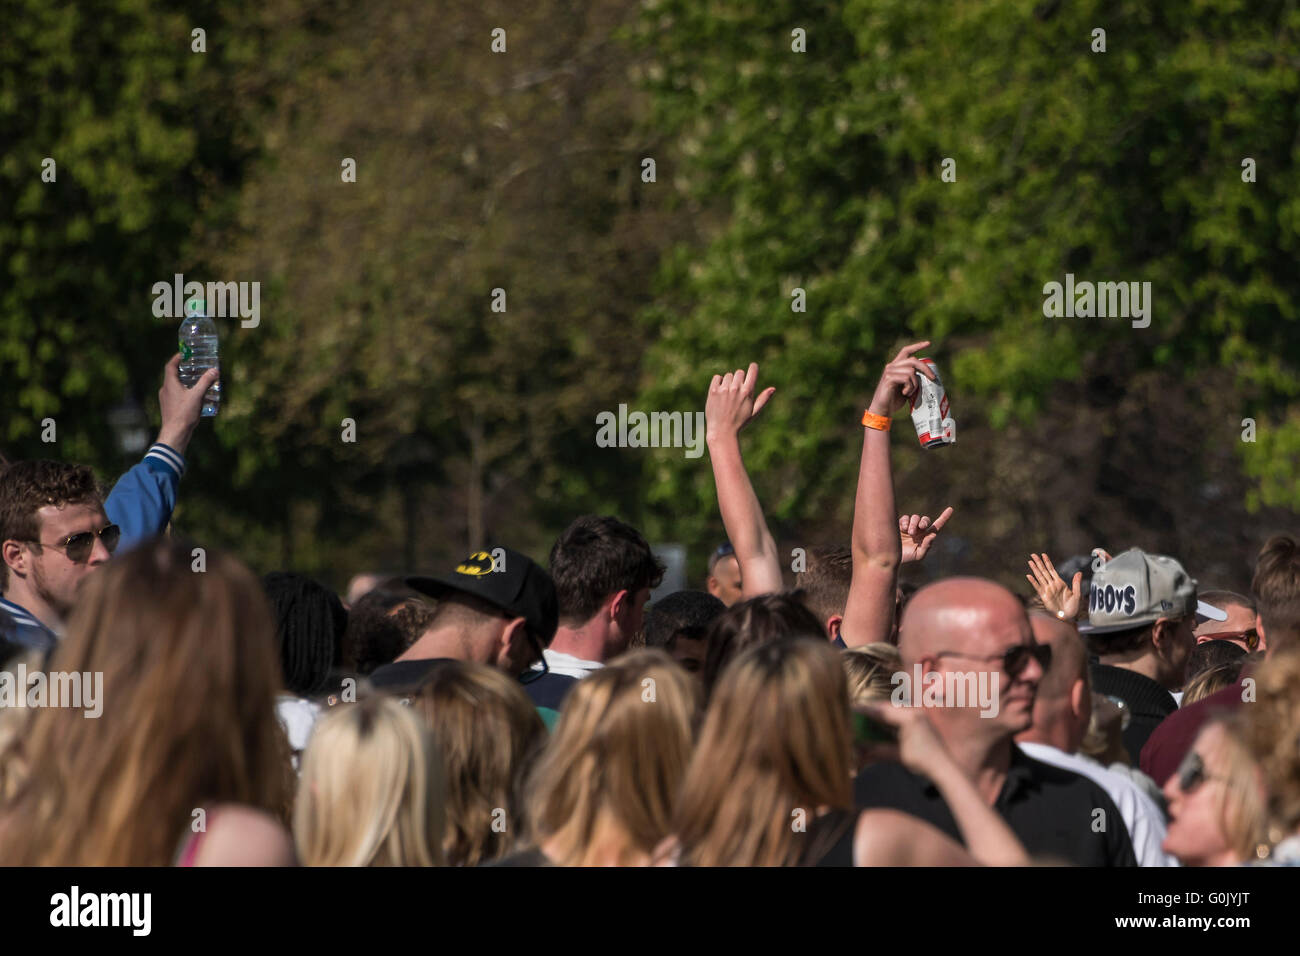 London, UK. 1st May, 2016. People, taking advantage of the spring weather, gather for an impromptu party after speakers Stock Photo